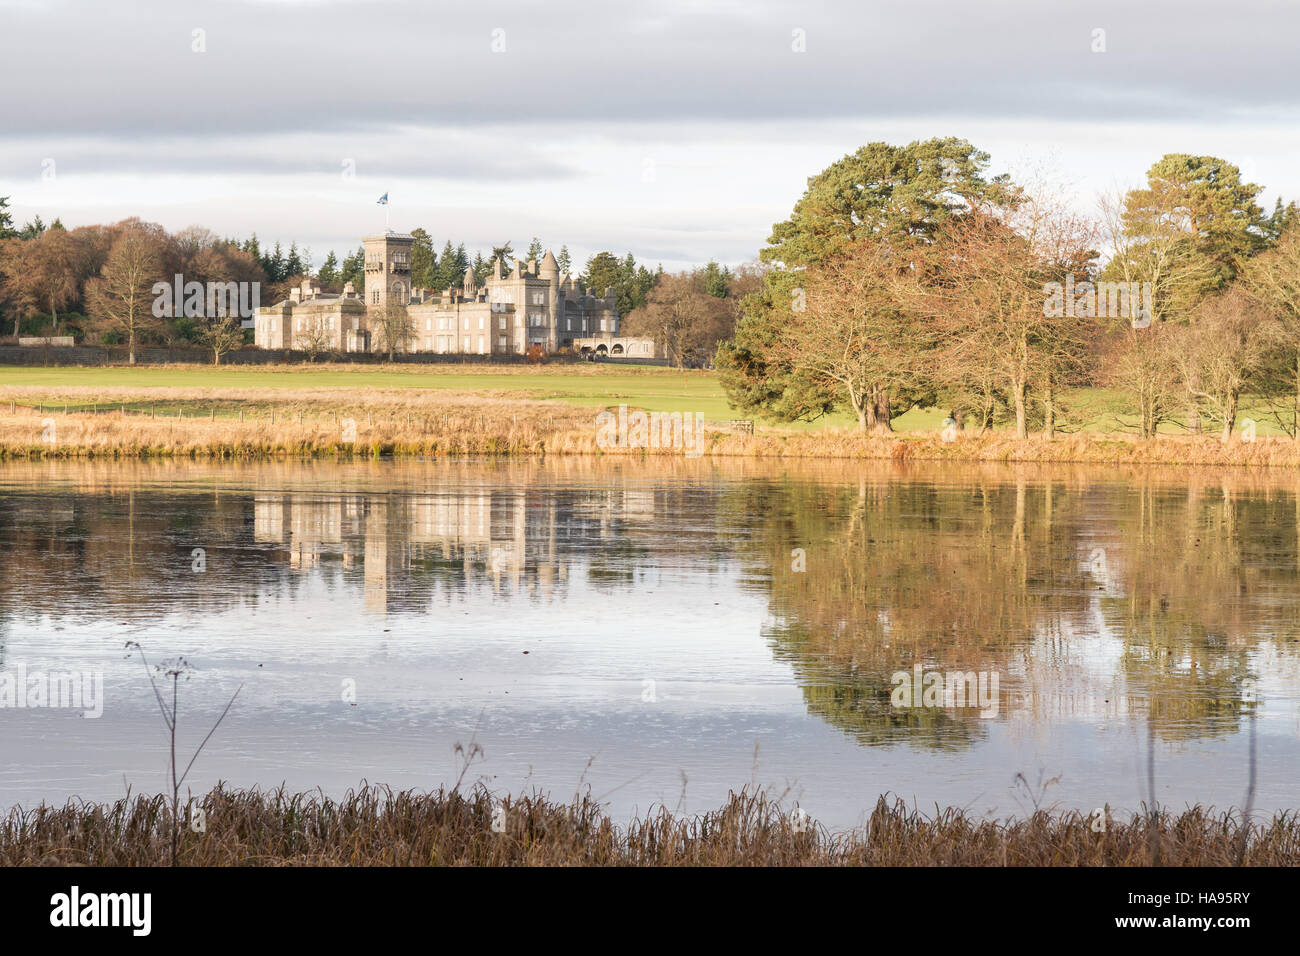 Maison Dunecht Dunecht, immobiliers, Aberdeenshire, Scotland, UK - réflexions sur la politique Loch Photo Stock